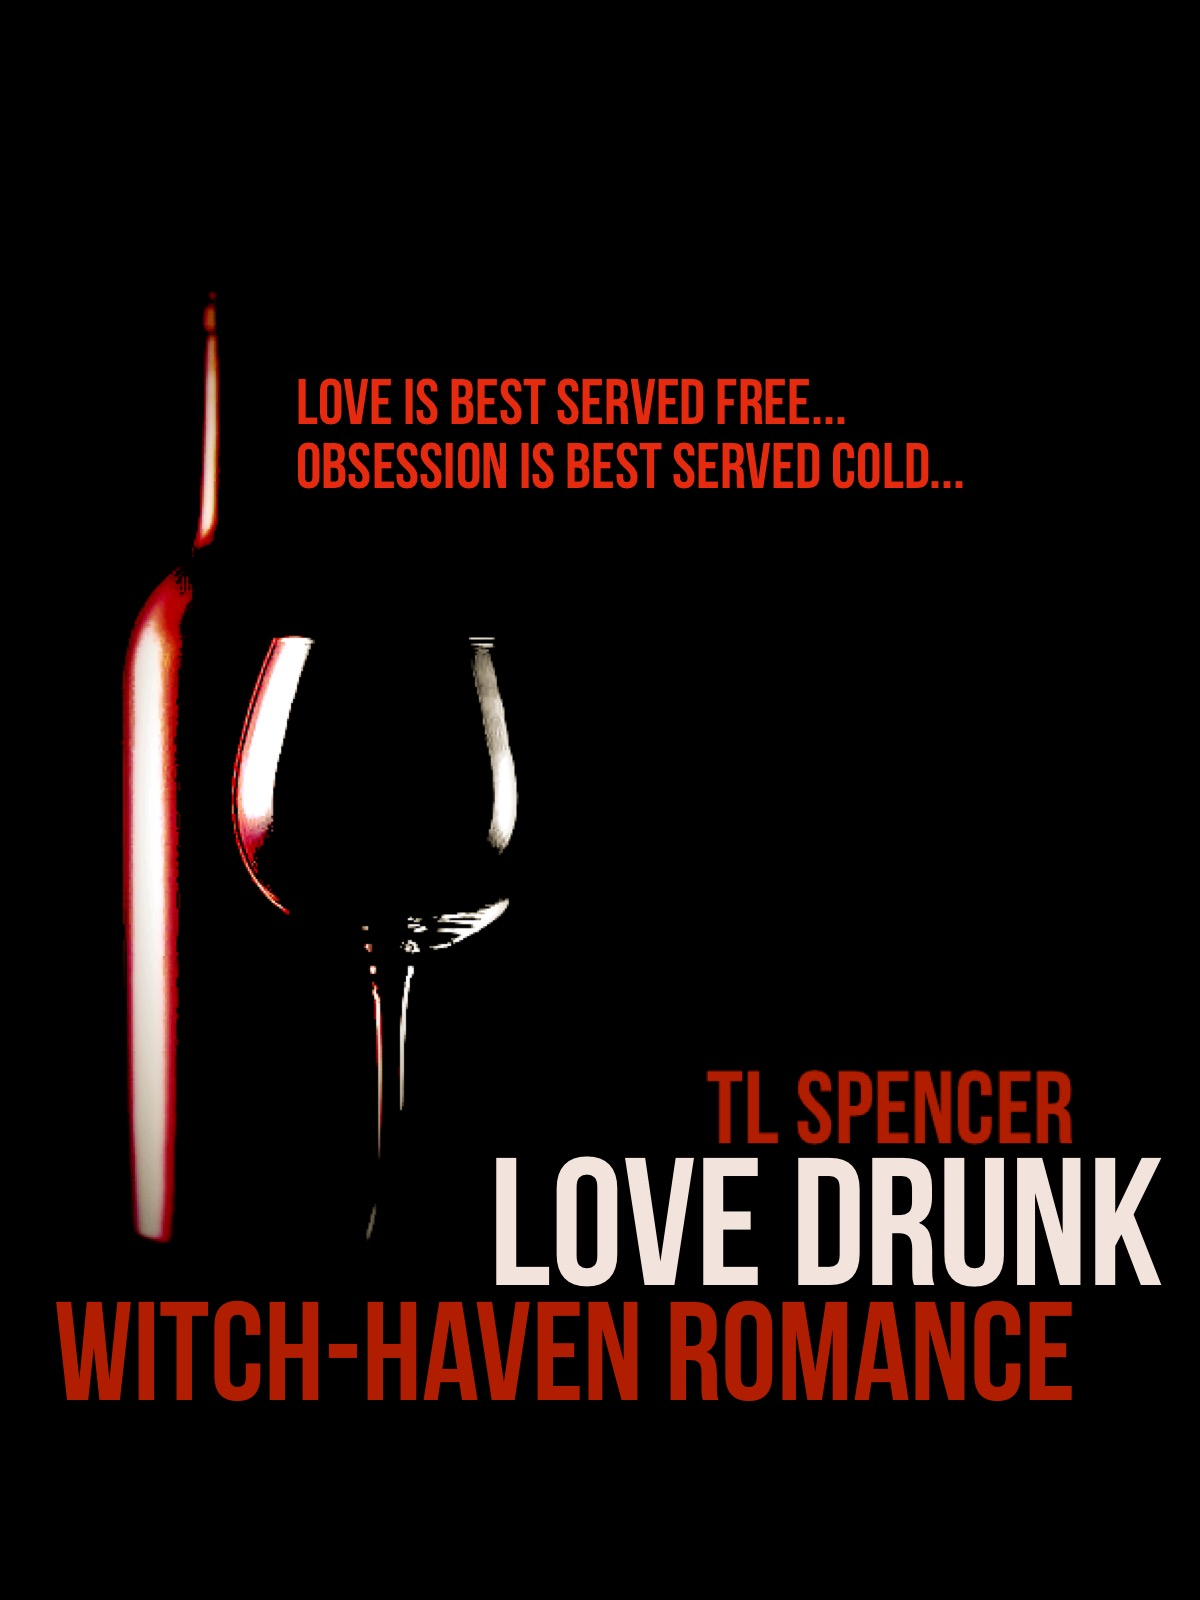 Love Drunk: Witch-Haven Romance Short Story